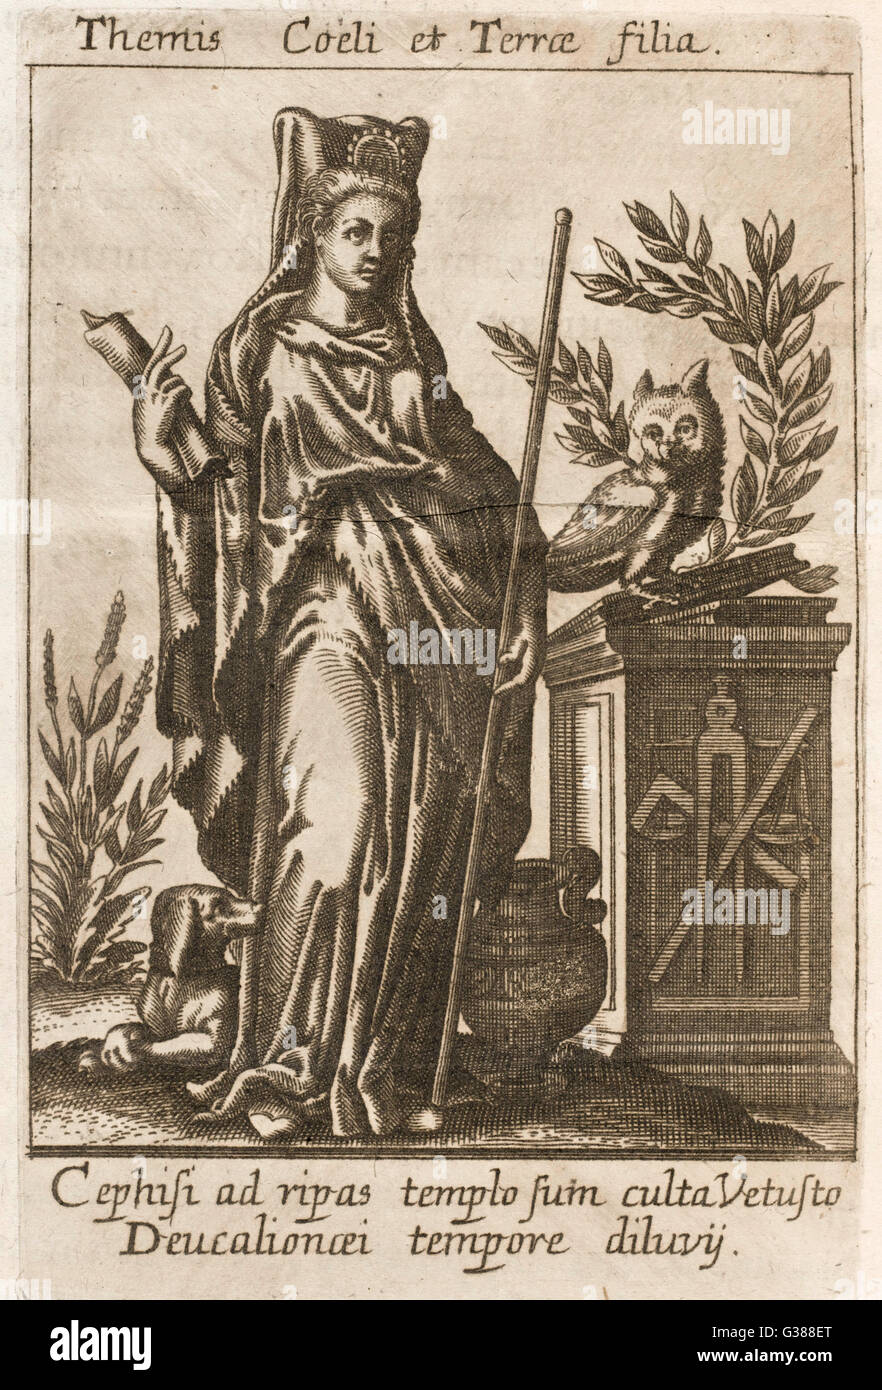 Greek/Roman deity, protectress  of hospitality and of the  oppressed, possessed oracular  powers - Stock Image